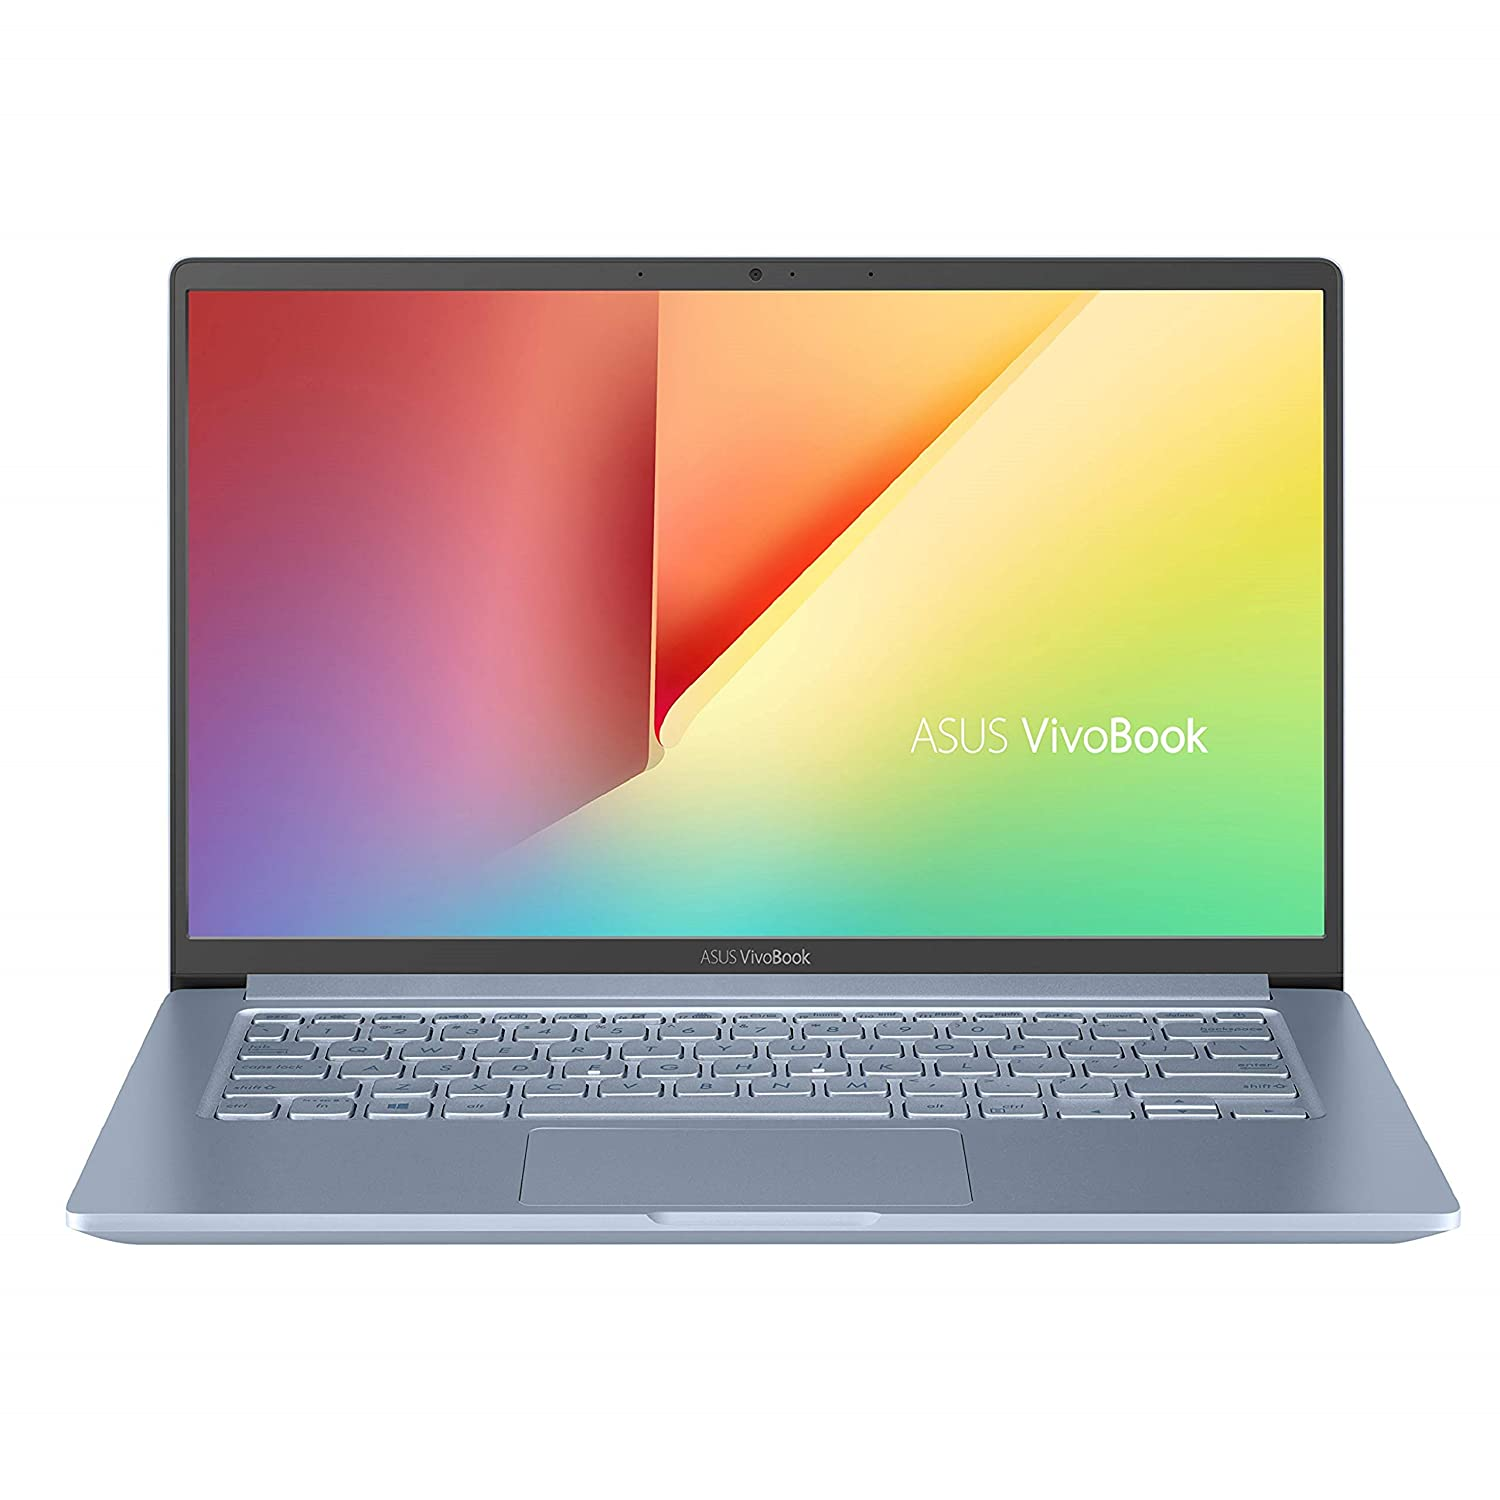 ASUS VivoBook S14 Intel Core i5-1035G1 10th Gen 14-inch FHD Thin and Light Laptop